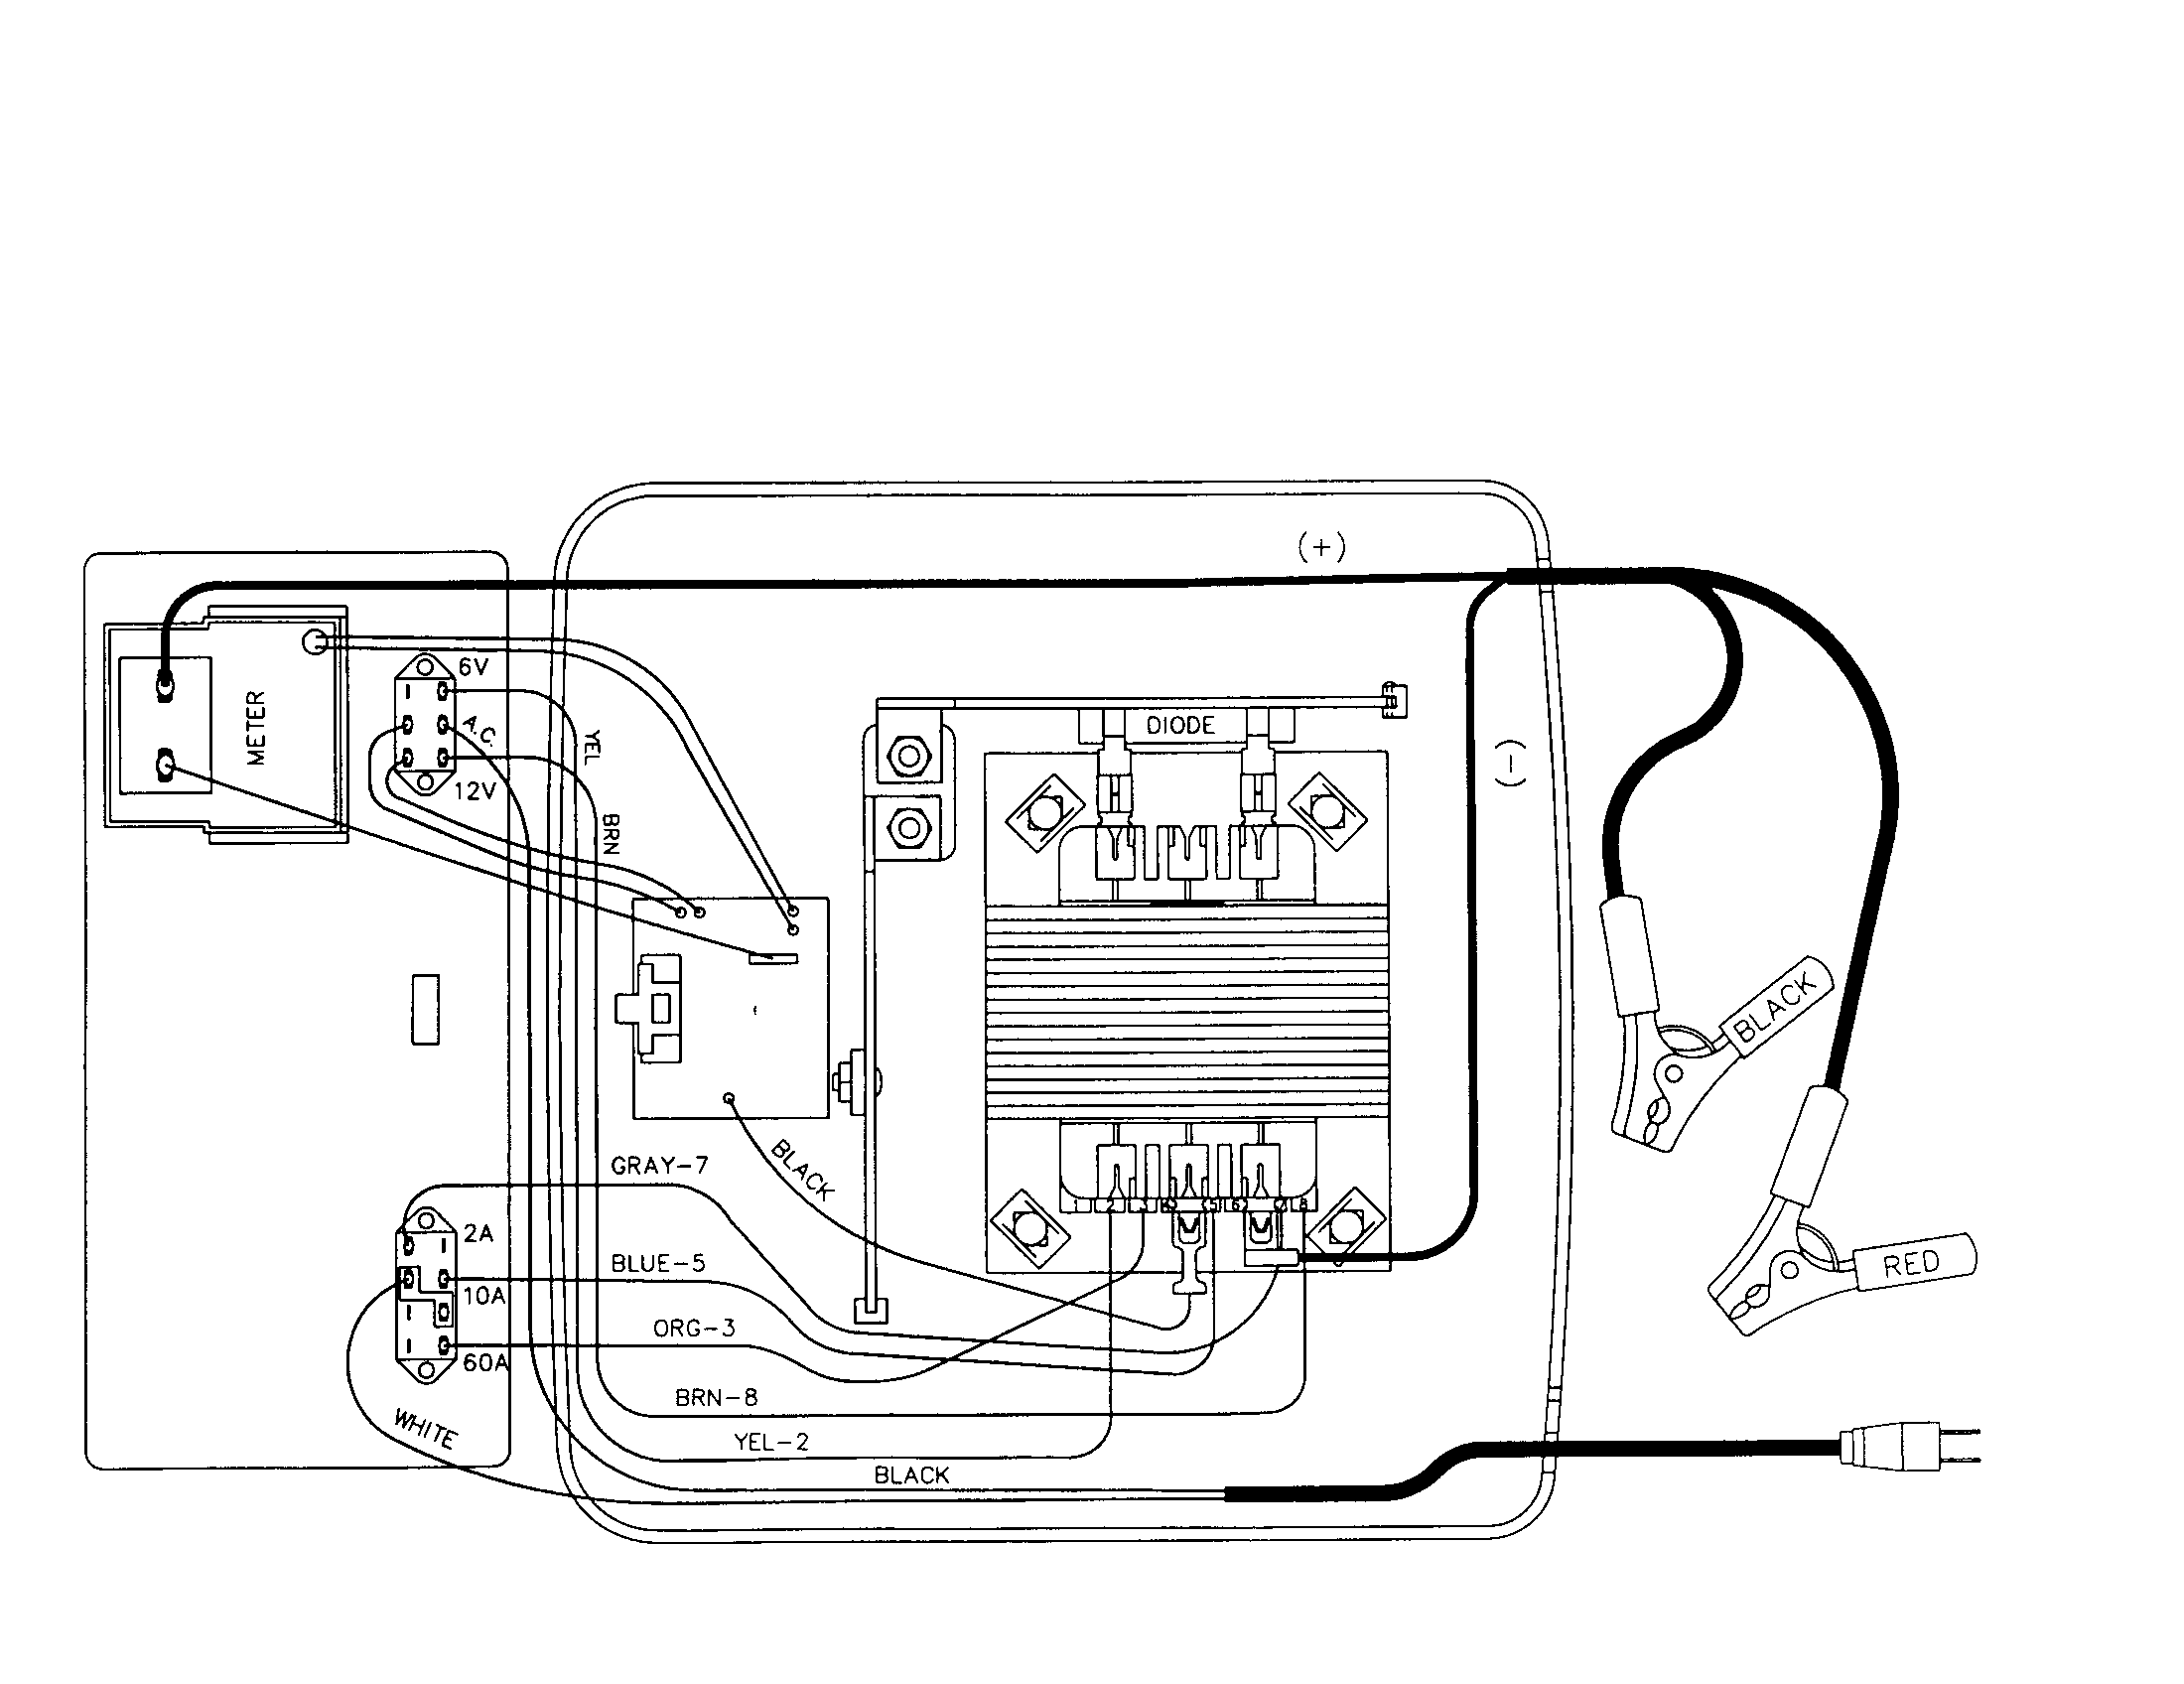 gnb battery charger wiring diagram